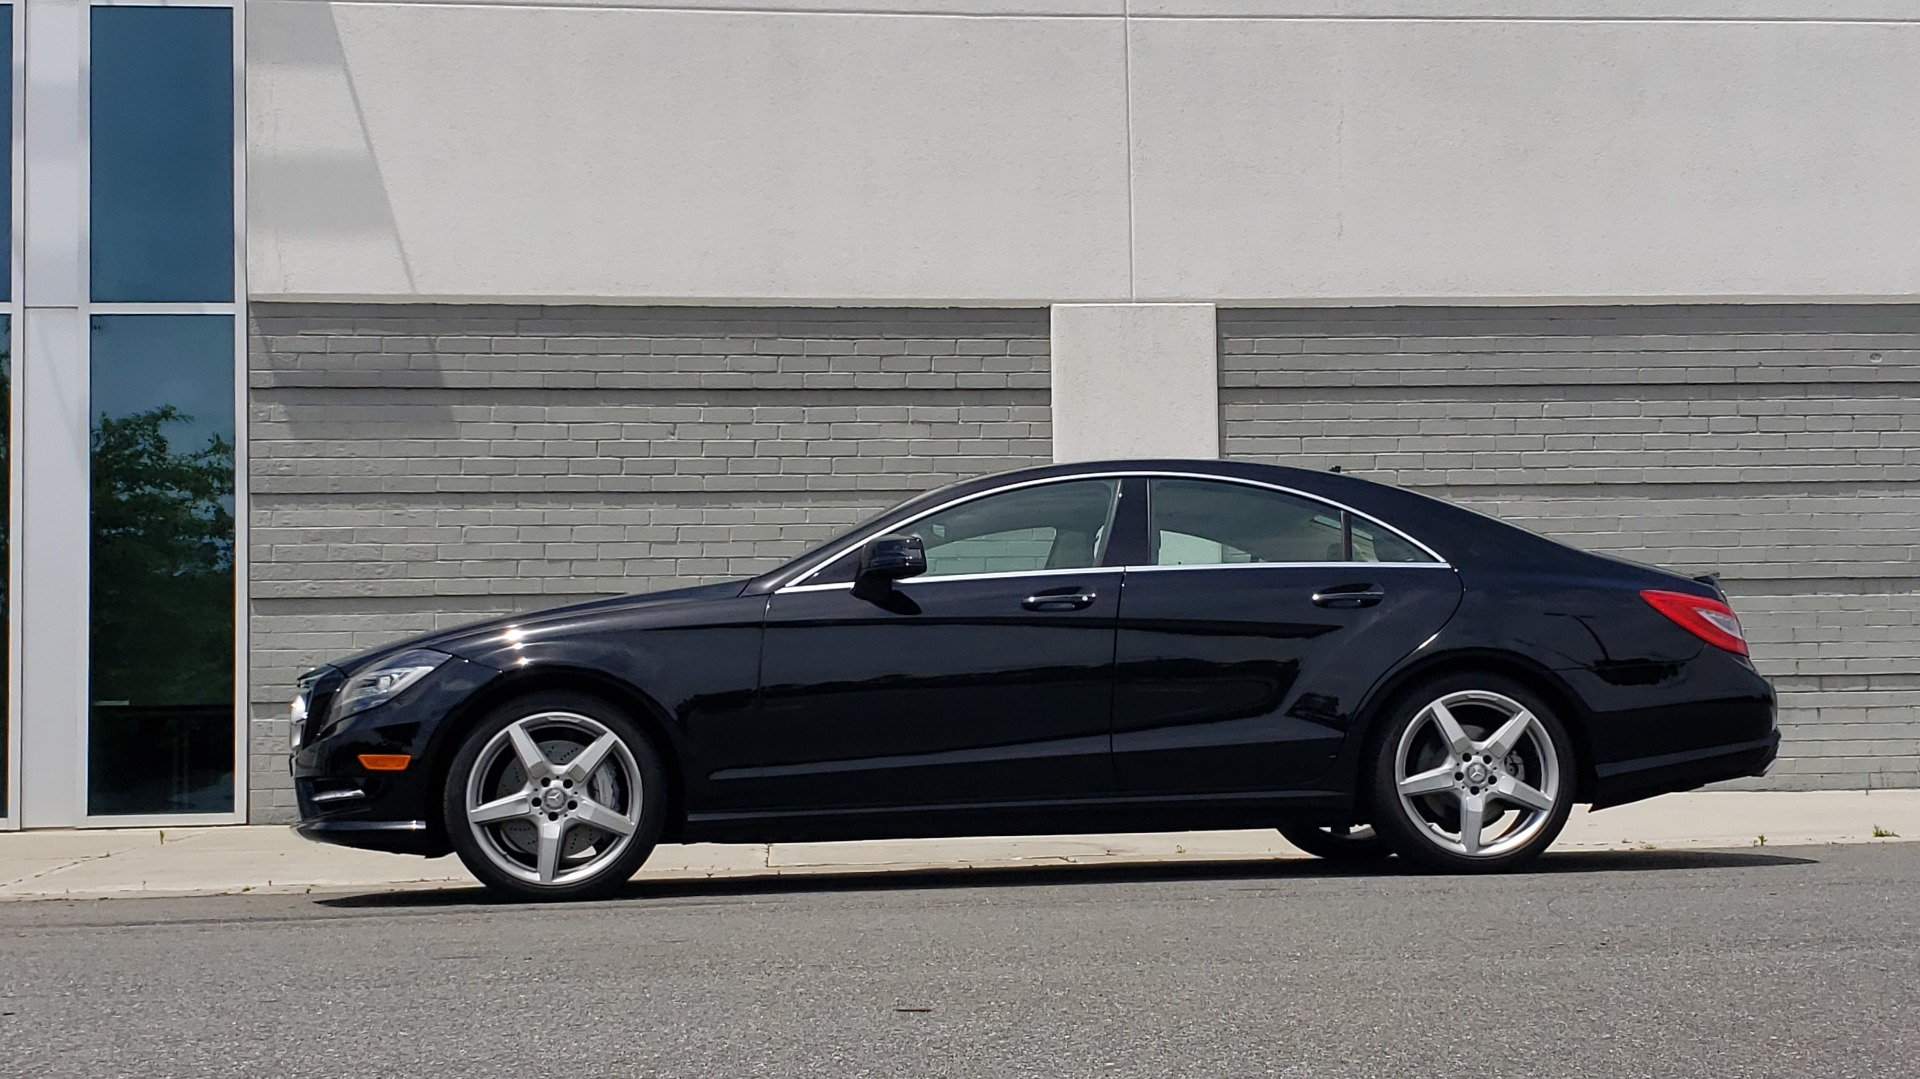 Used 2014 Mercedes-Benz CLS-CLASS CLS 550 PREMIUM / AMG SPORT WHLS / SUNROOF / LANE TRACK / PARKTRONIC for sale Sold at Formula Imports in Charlotte NC 28227 5